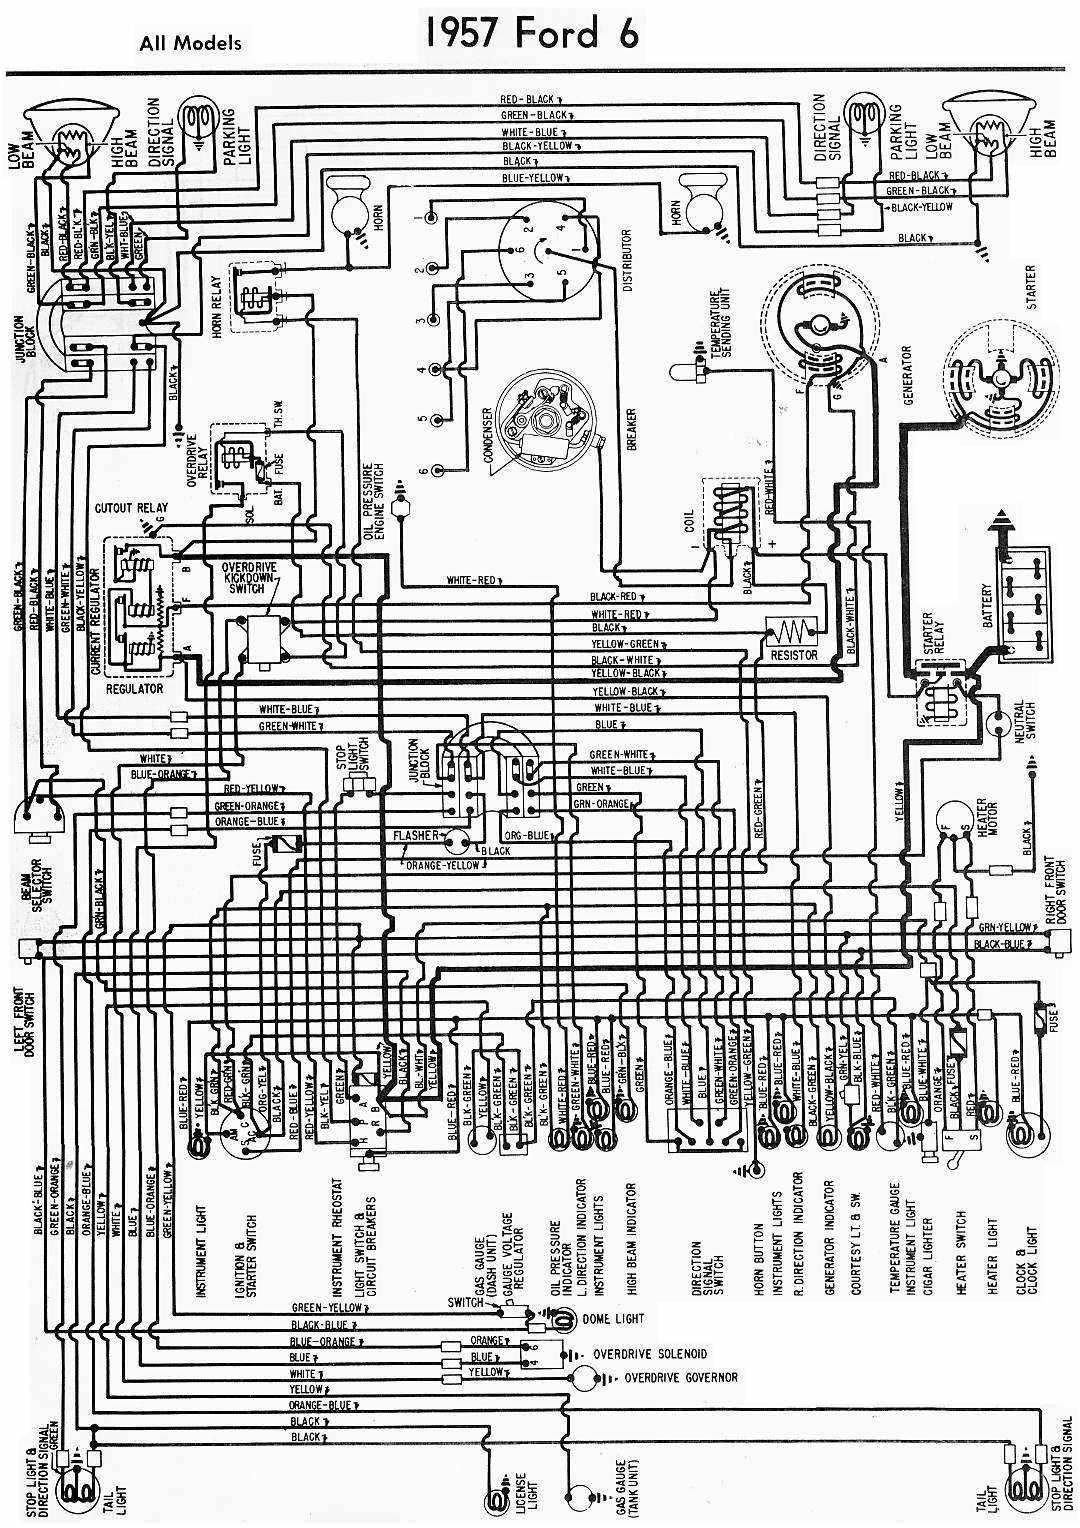 Ford 6 Cylinder All Models 1957 Wiring Diagram | All about Wiring Diagrams